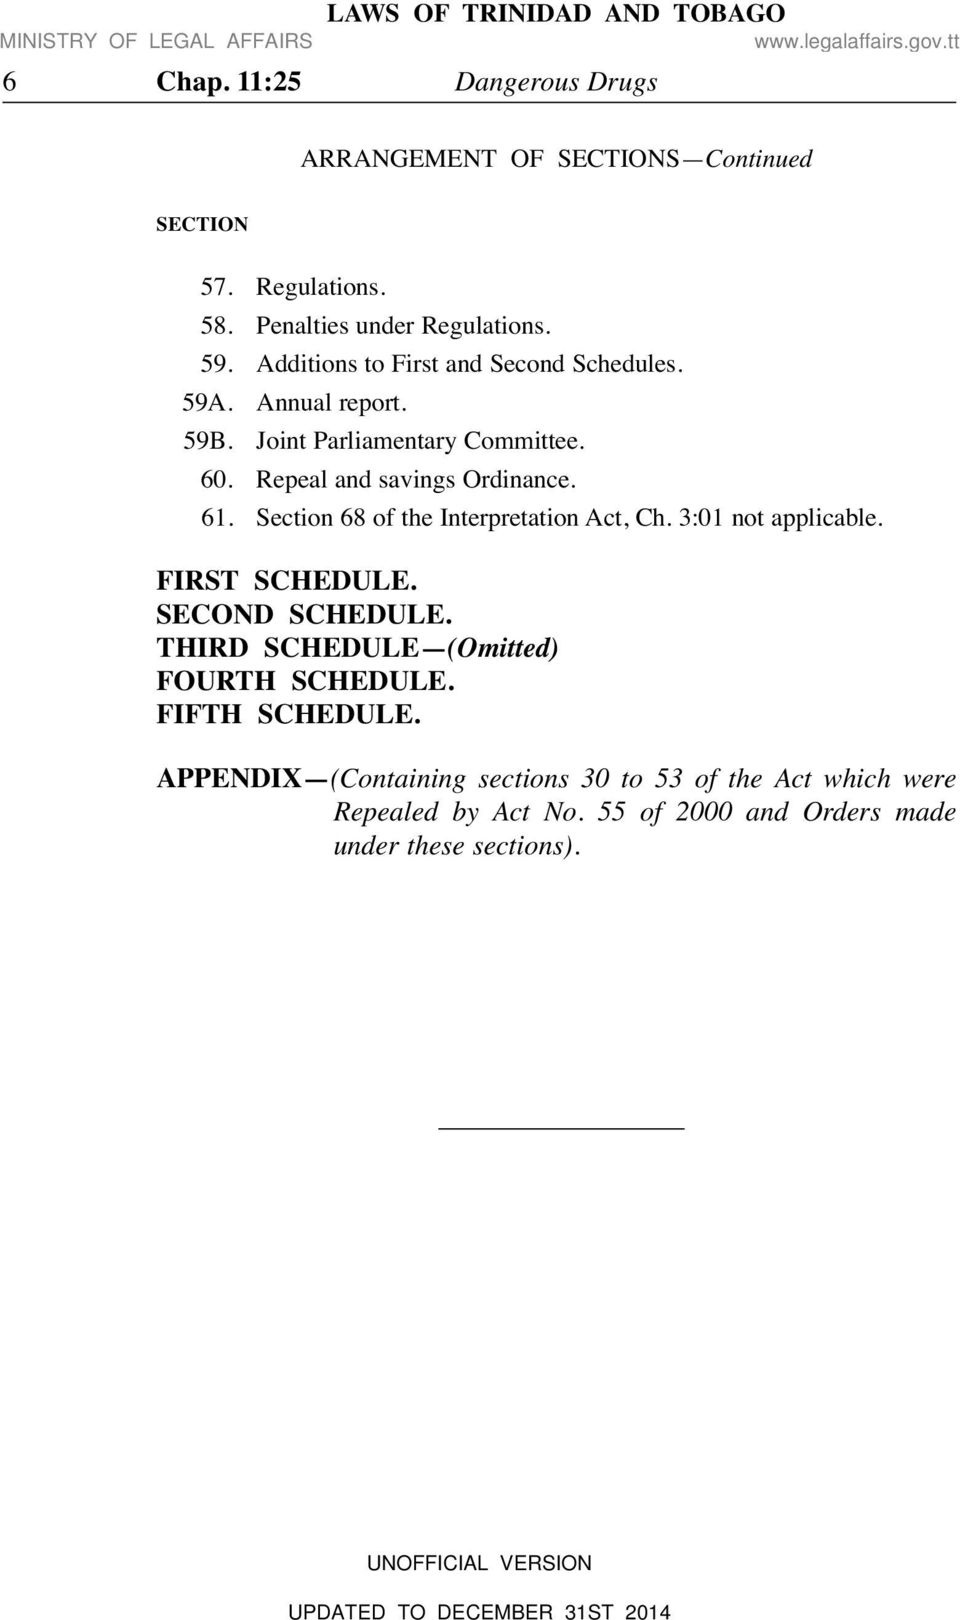 Section 68 of the Interpretation Act, Ch. 3:01 not applicable. FIRST SCHEDULE. SECOND SCHEDULE. THIRD SCHEDULE (Omitted) FOURTH SCHEDULE.